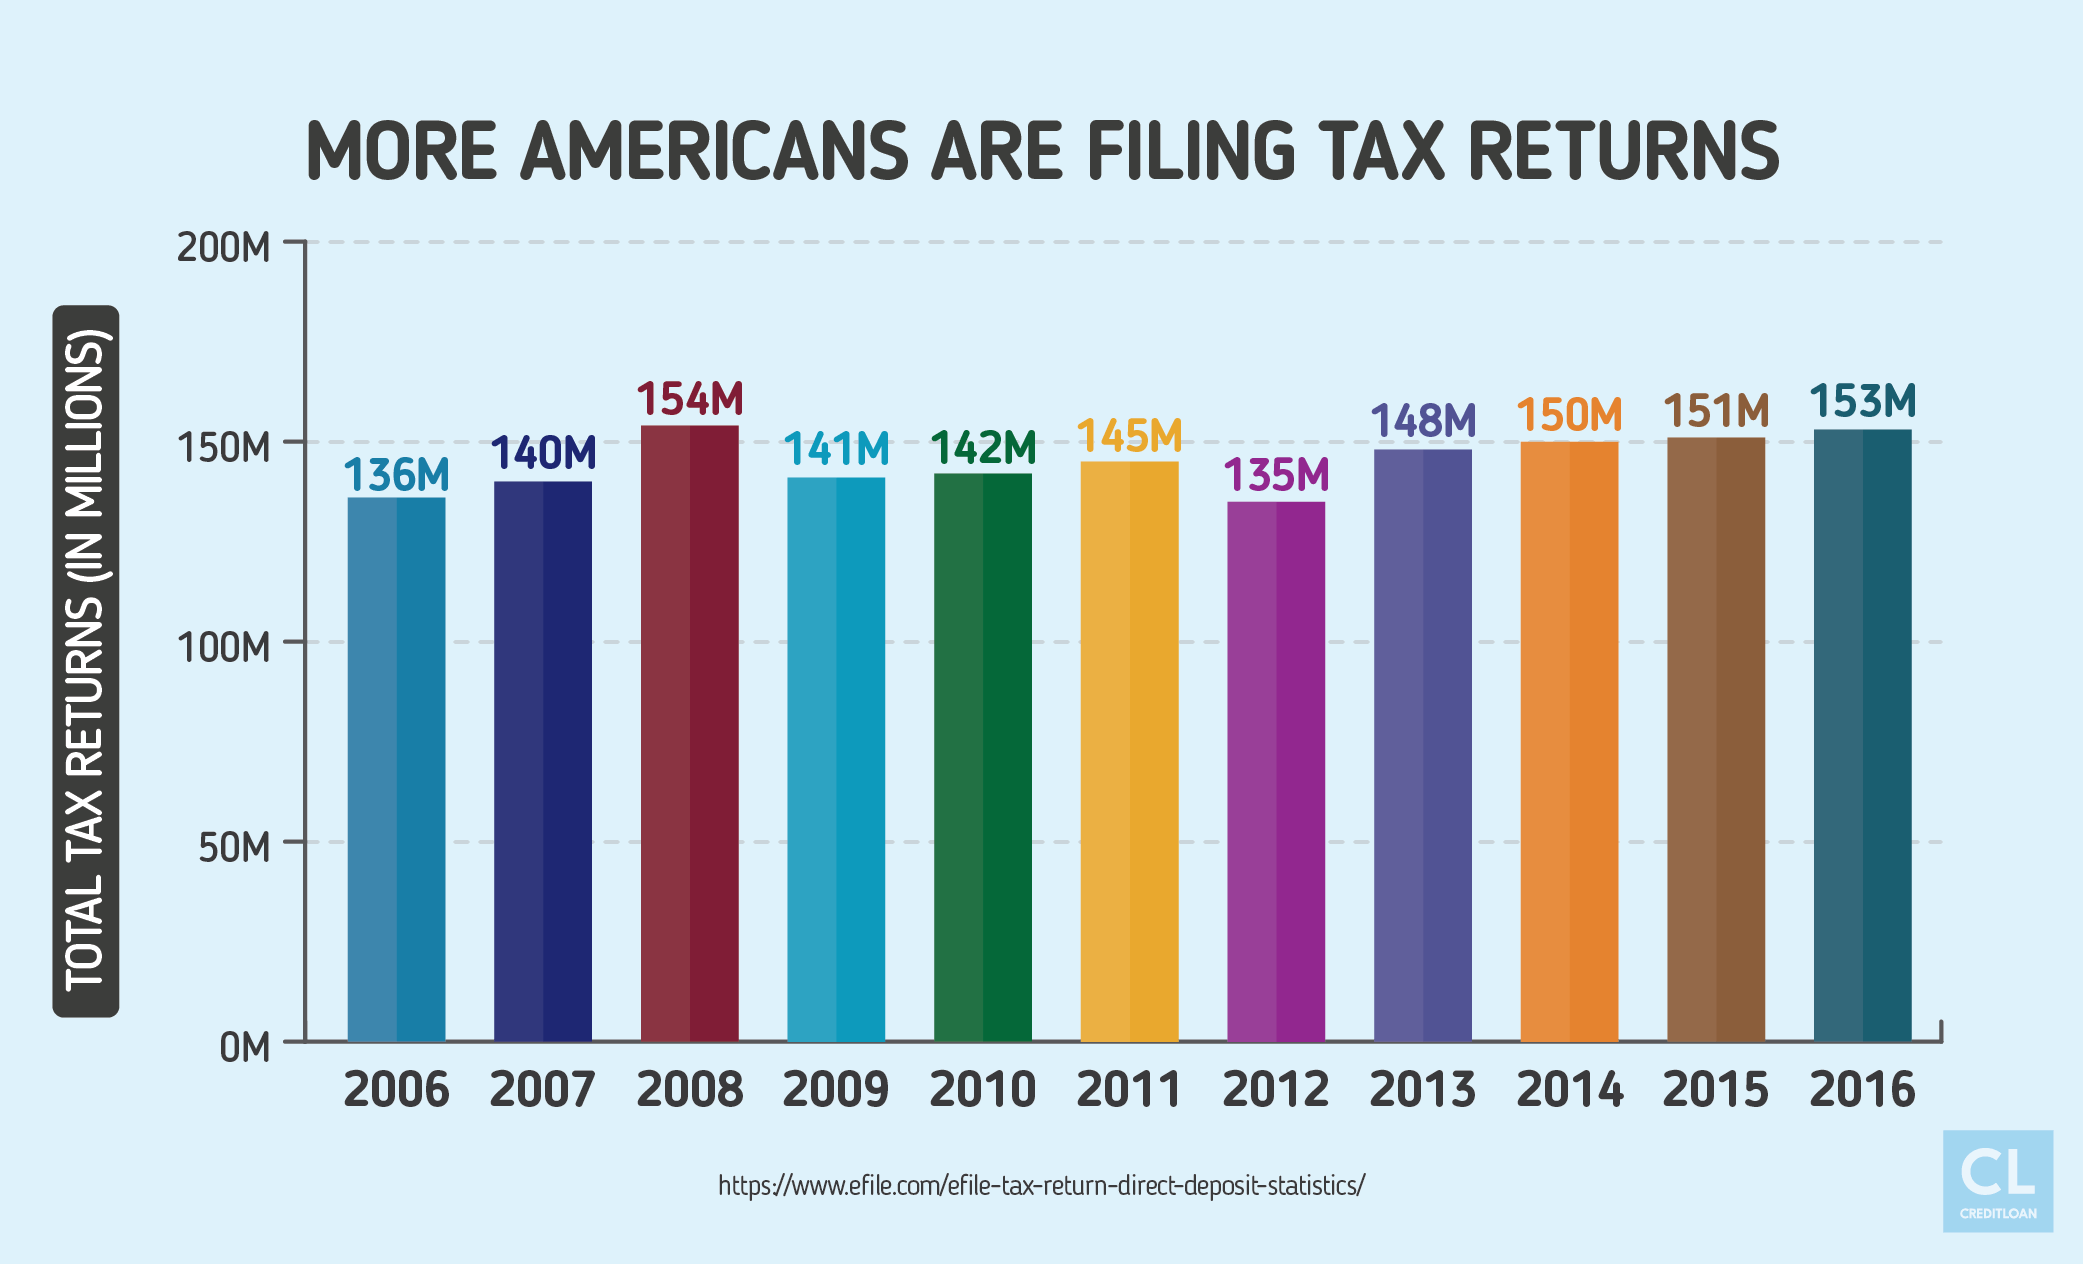 More Americans are Filing Tax Returns